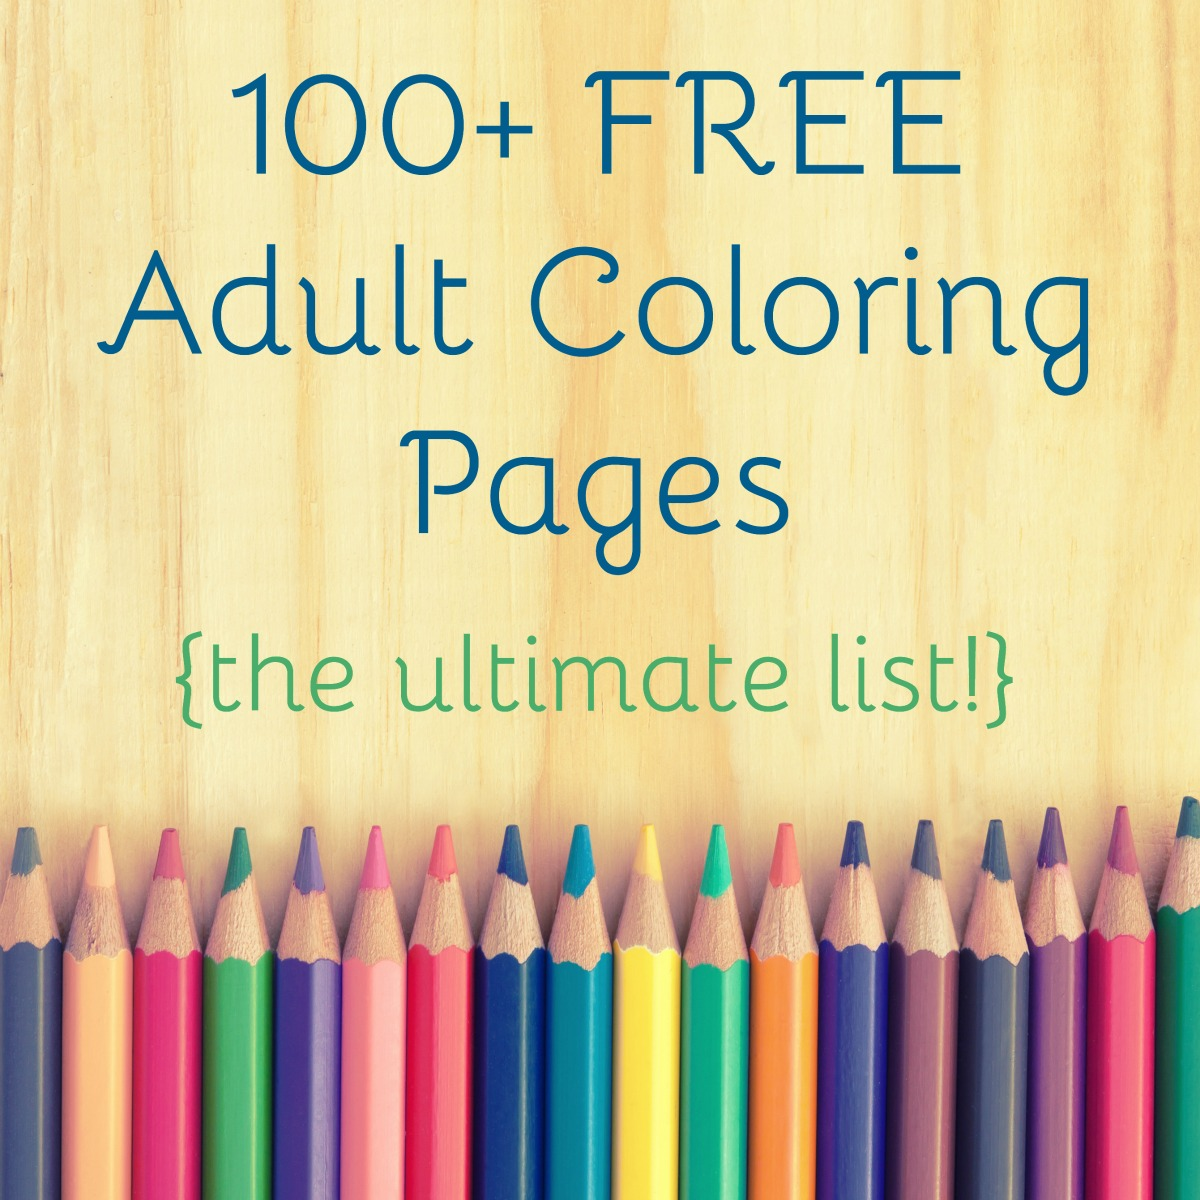 Free printable coloring pages with words - 100 Free Adult Coloring Pages